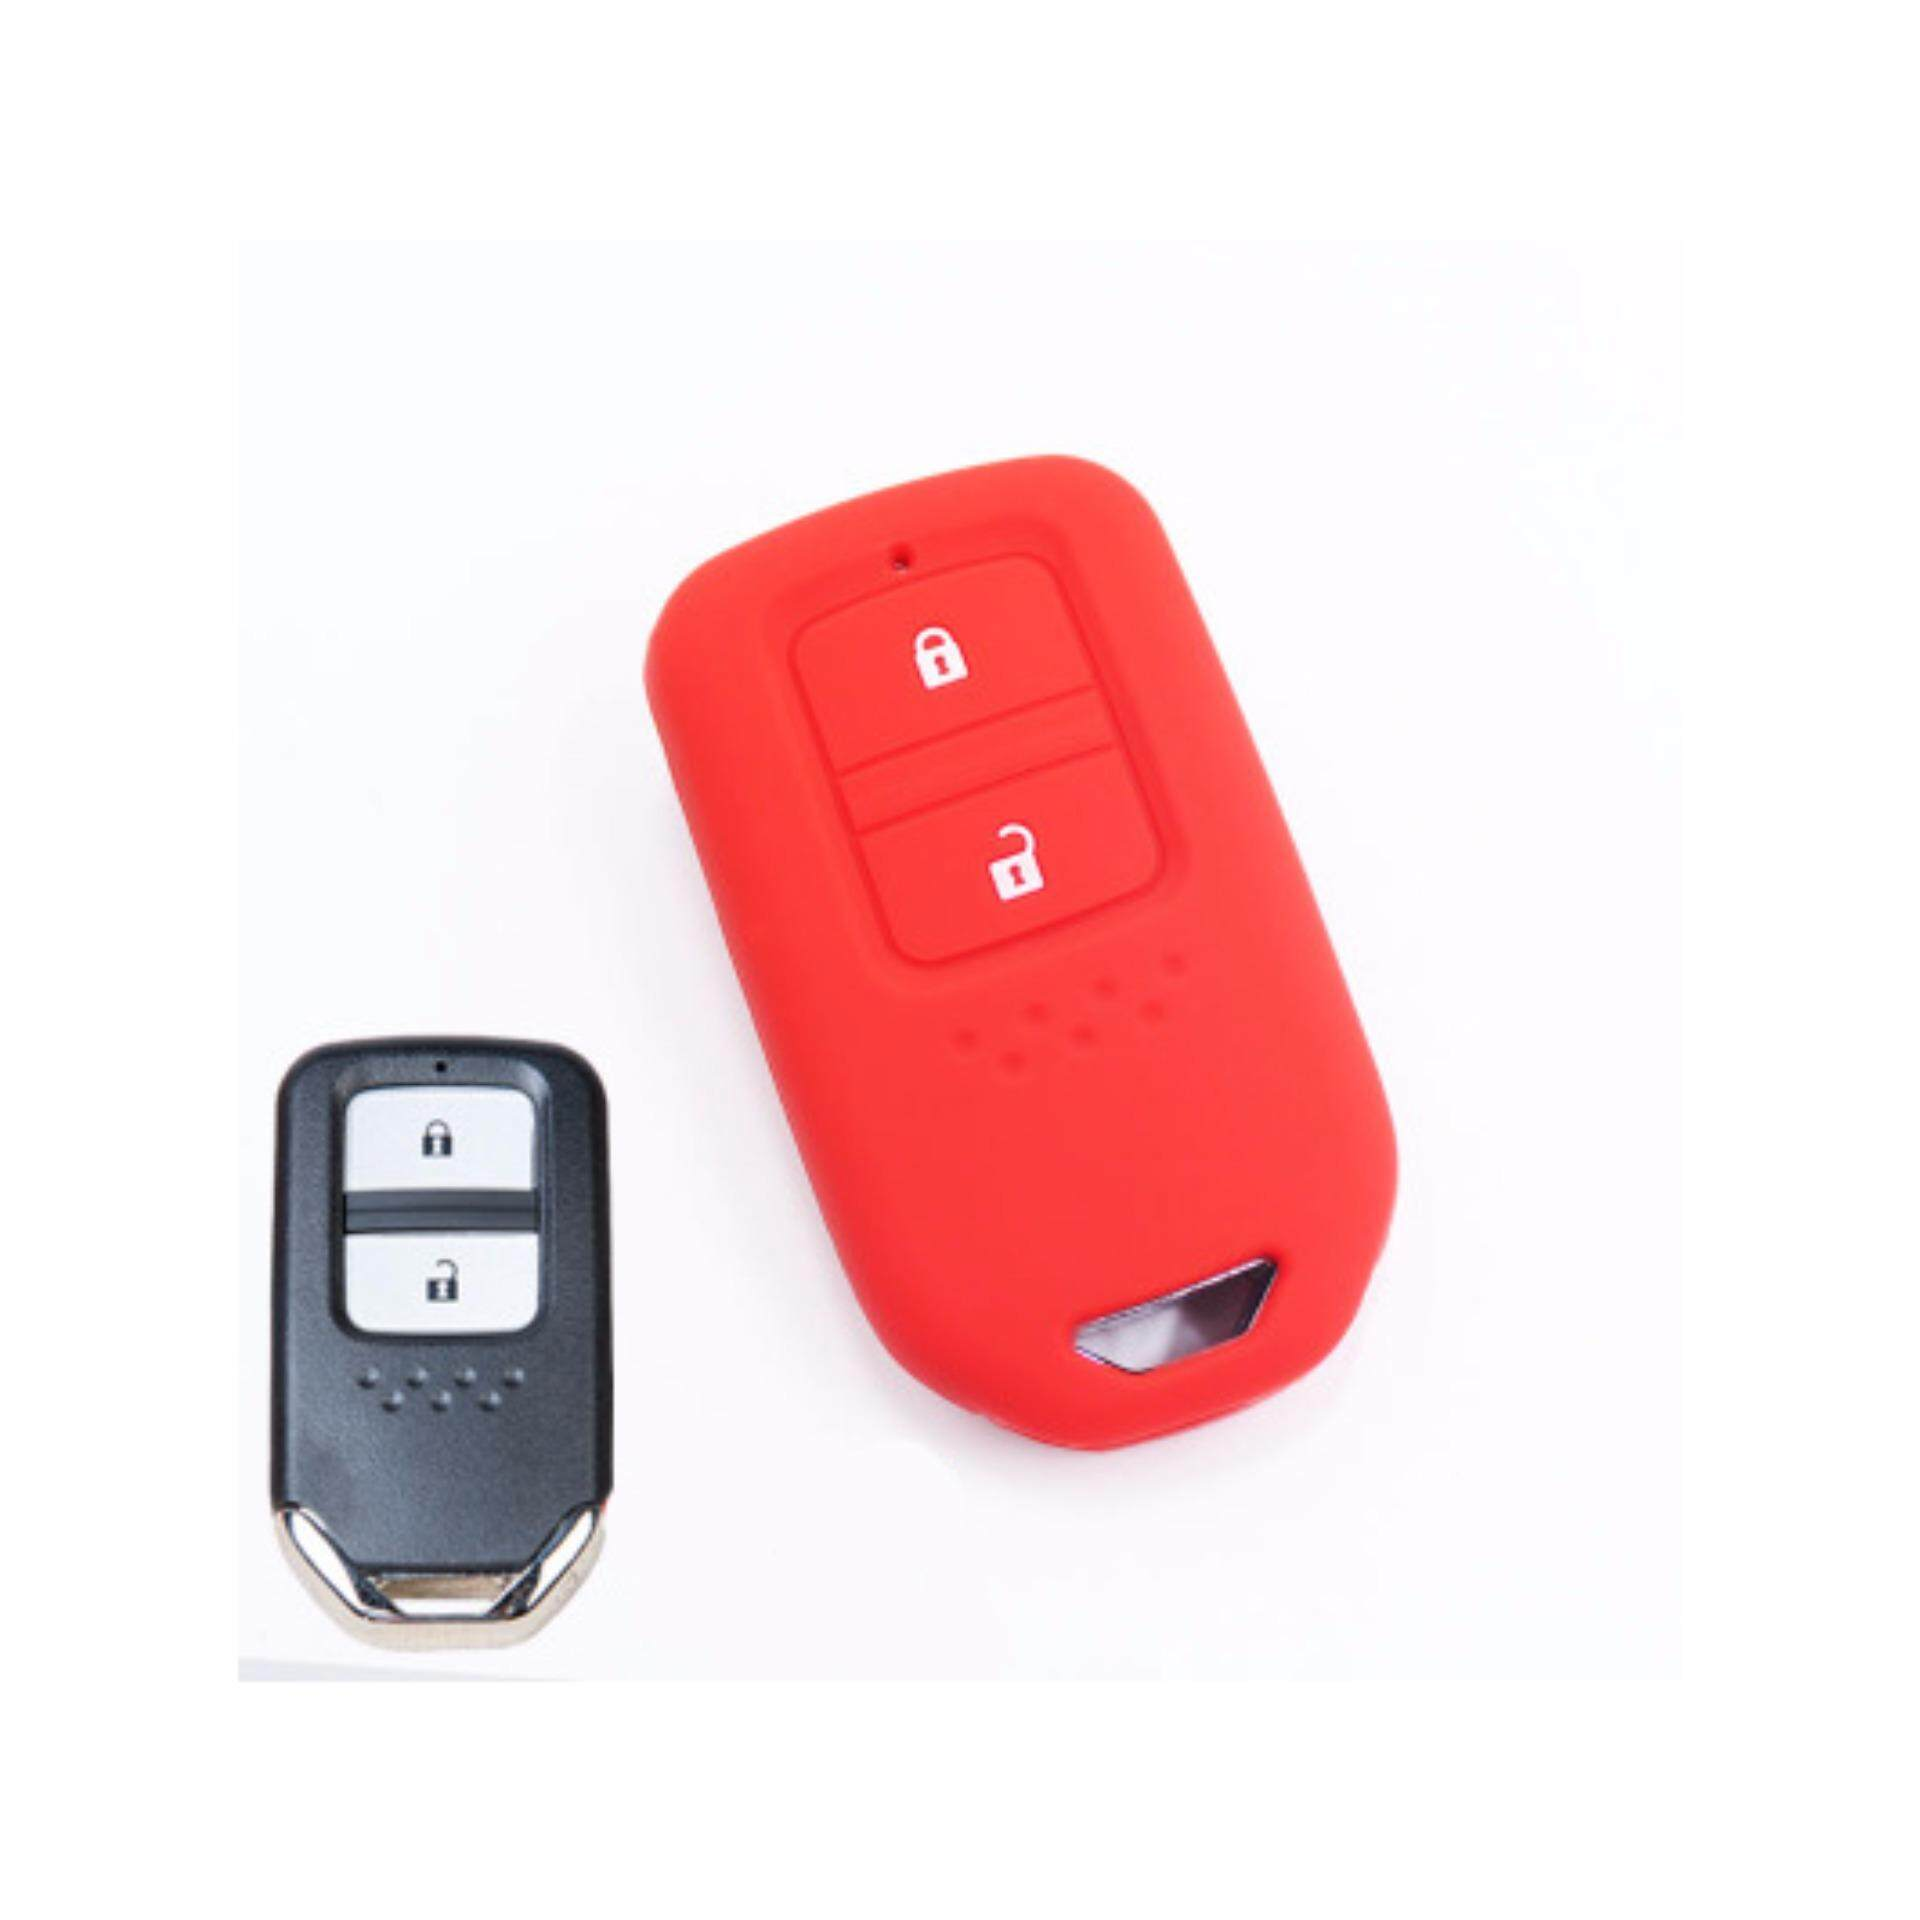 2 Pcs Keyless Remote Silicone Car Key FULL Cover Casing for Honda HRV BRV Jazz CRV 2014-2018 - intl